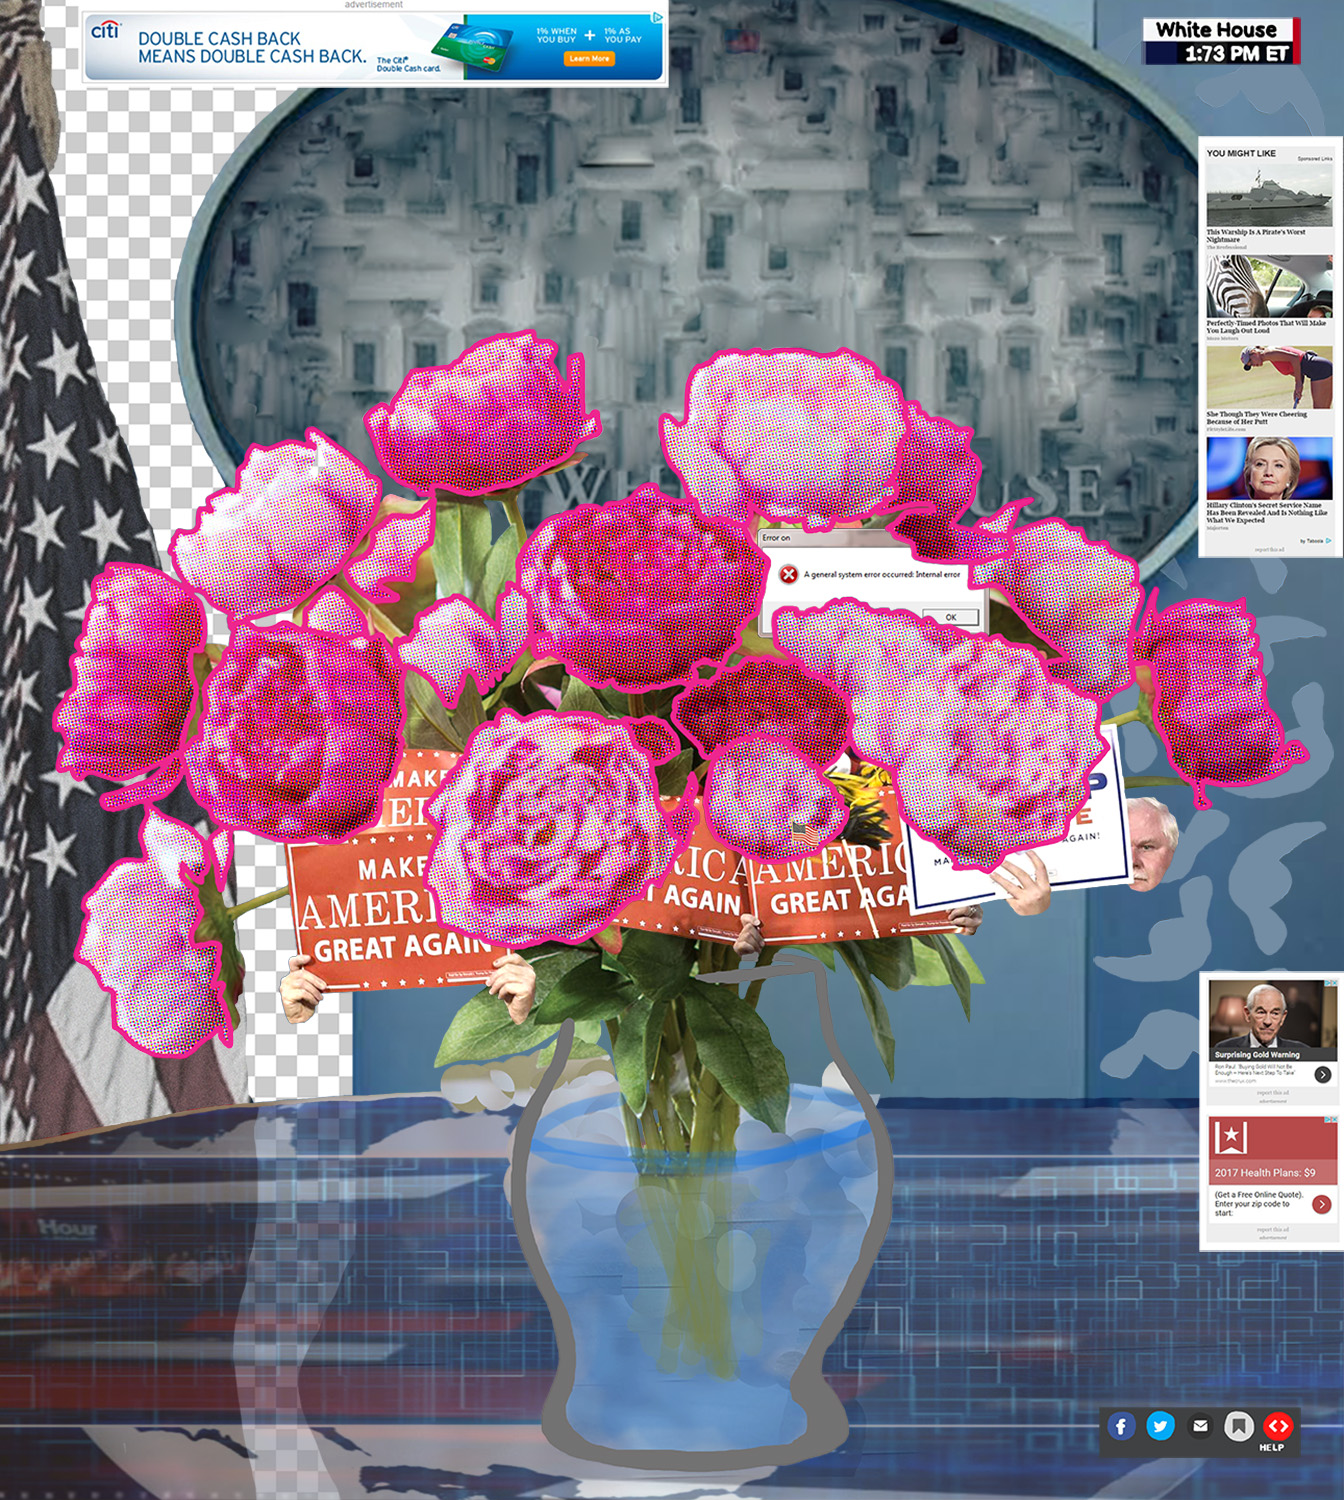 Flowers for donald #18 (press room [with suggested content])